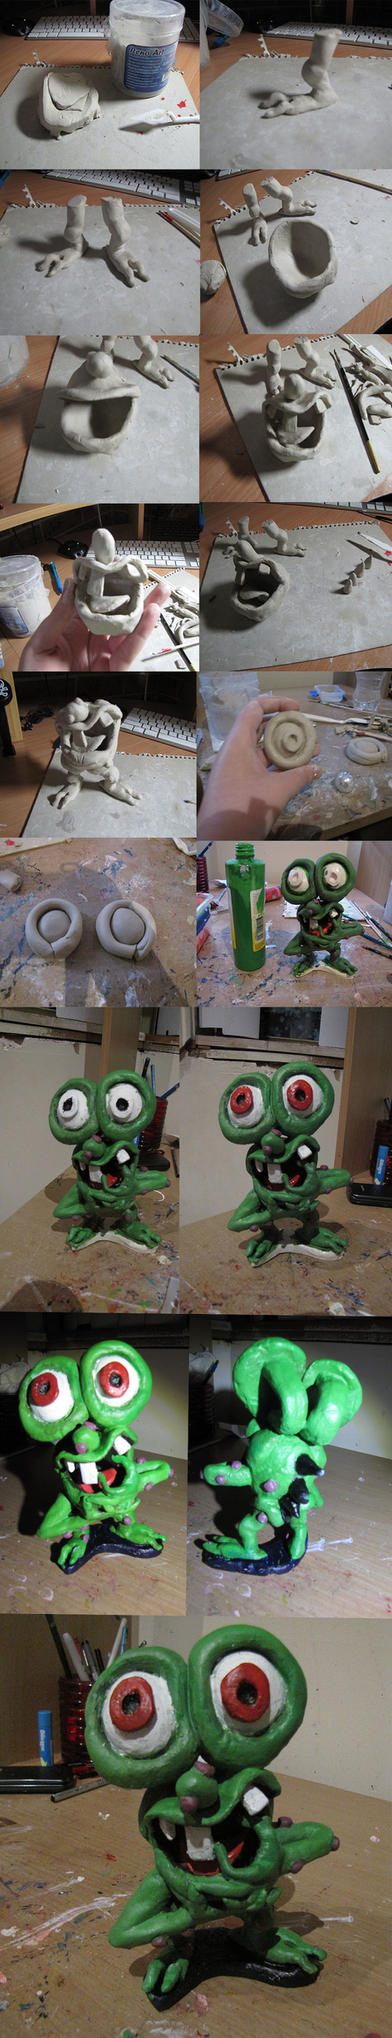 Making Of my Mr Bumpy figure by raggyrabbit94